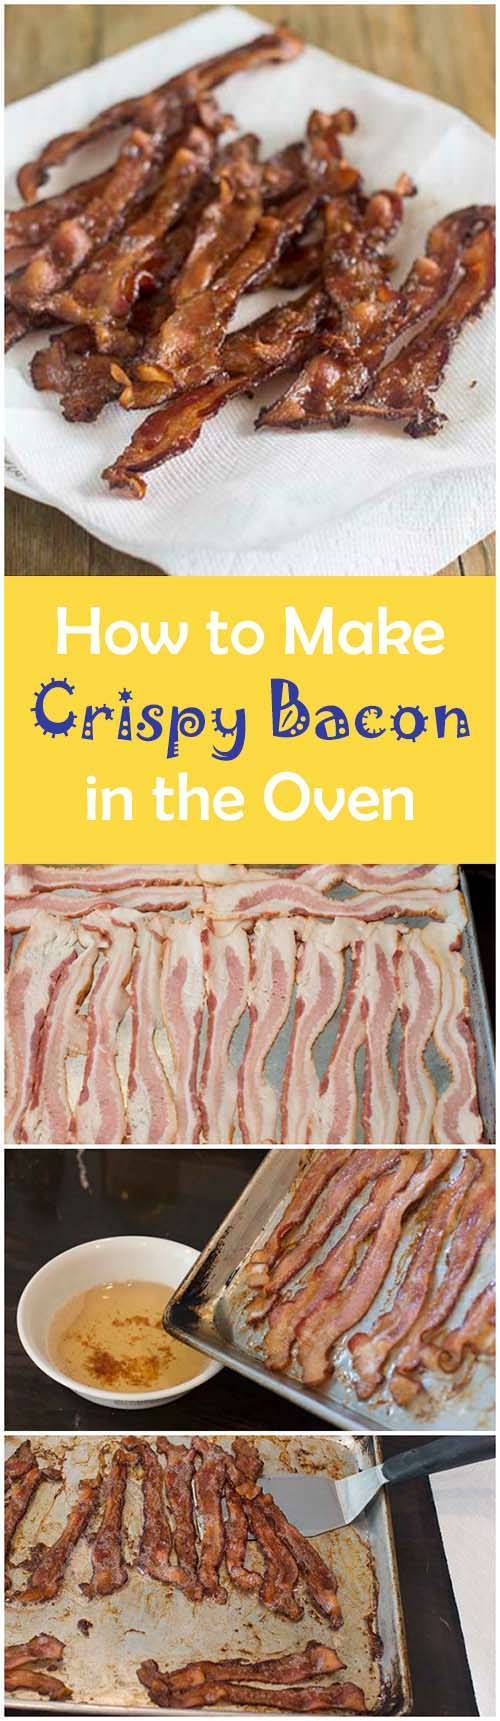 Making bacon for a crowd? Find out how to make a big batch of bacon in the oven. With this method you get it nice and crispy with very little effort. Easy crispy bacon - who doesn't love that?